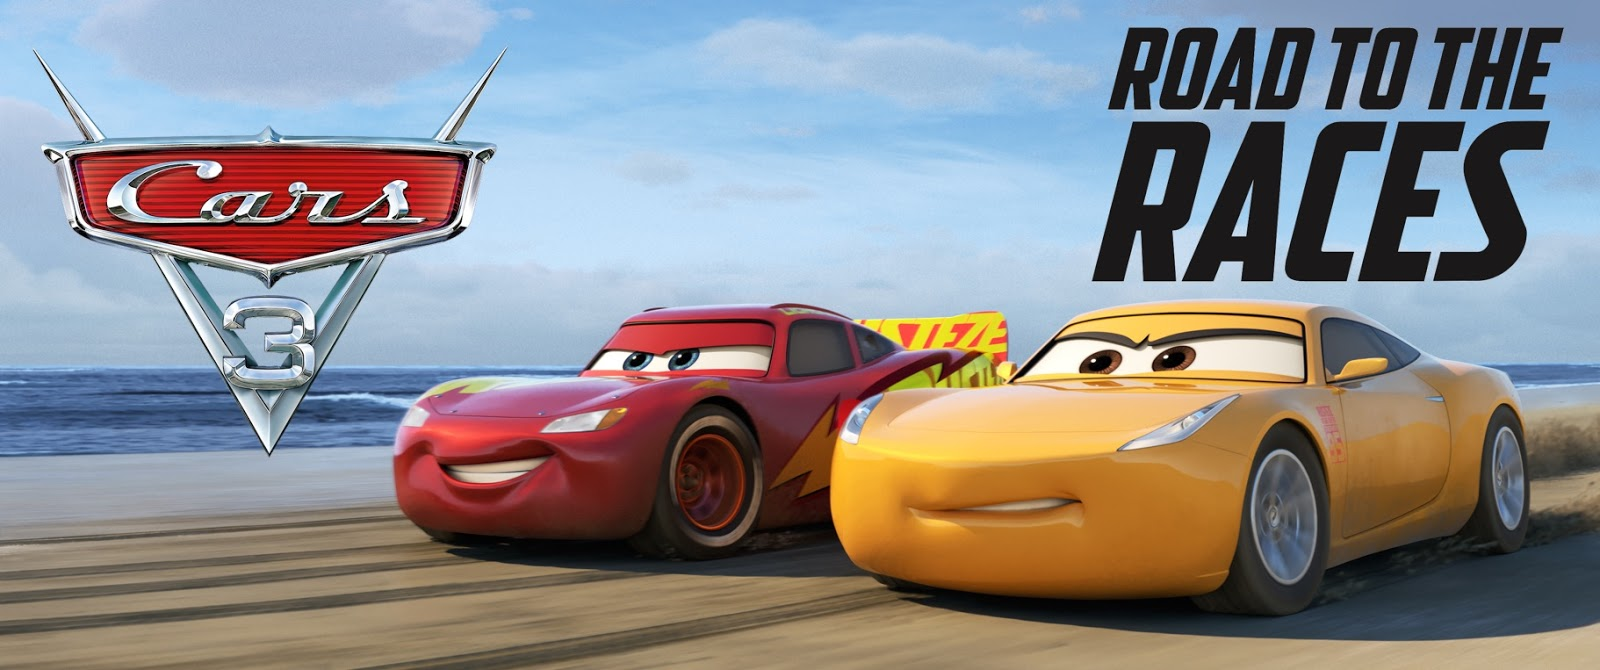 Cars 3 road to the races tour brings life sized lightning mcqueen